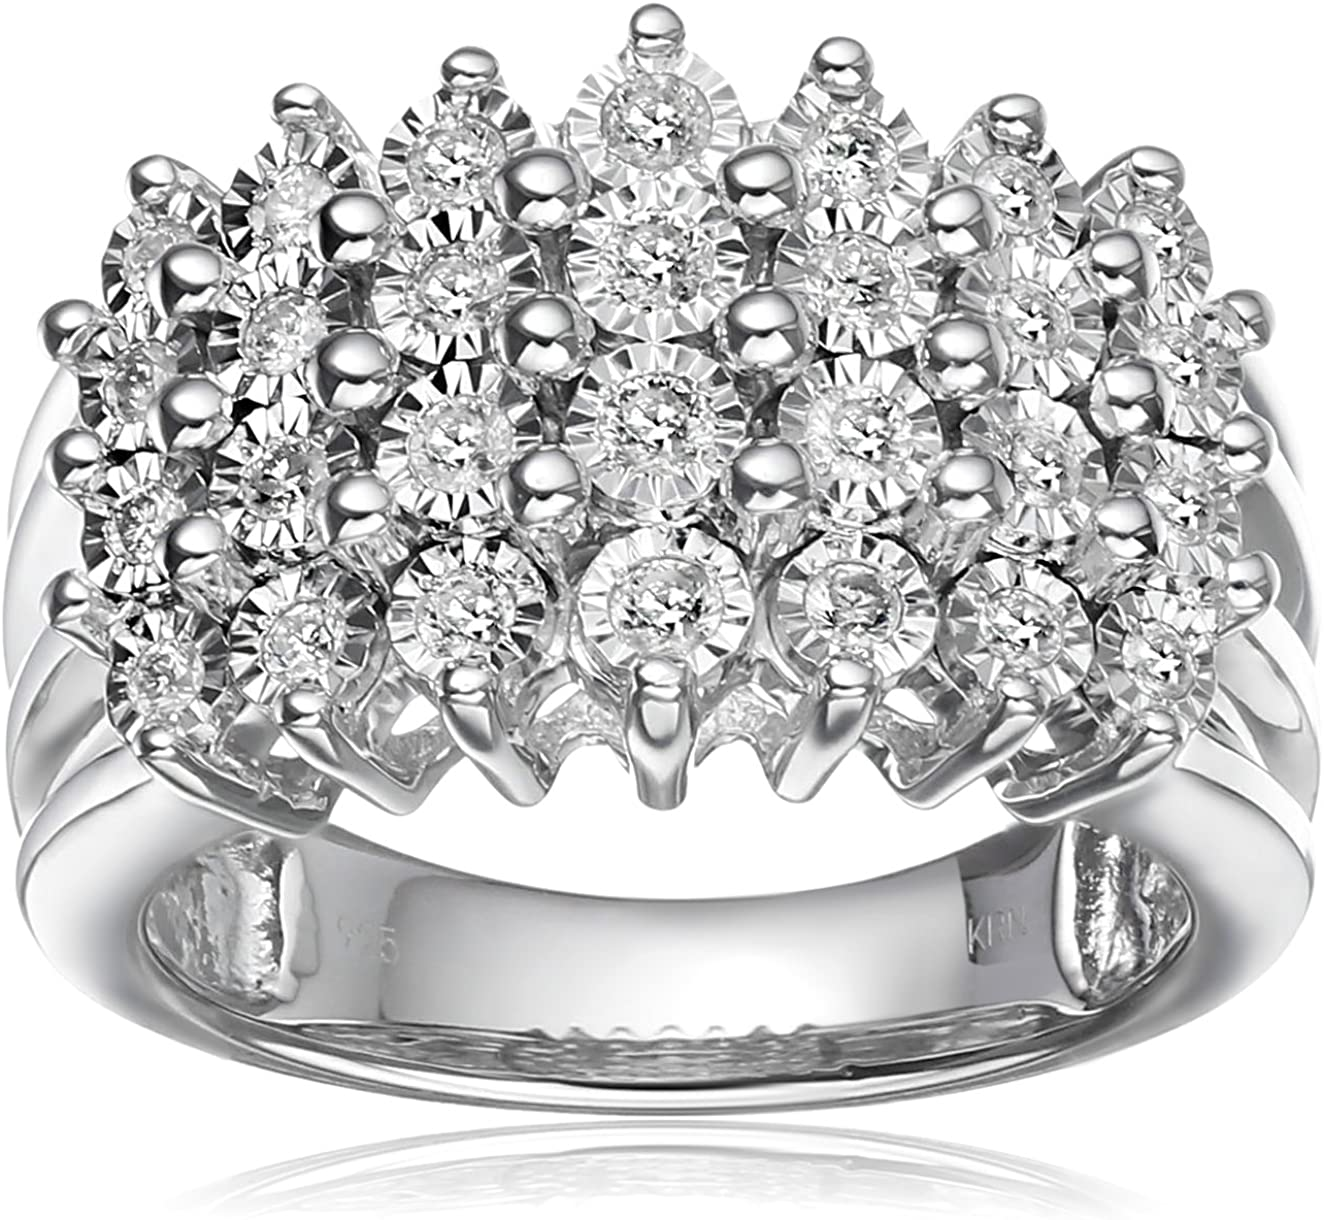 Sterling Silver with Miracle Plate Diamond Engagement Ring (1/2 cttw, I-J Color, I2-I3 Clarity), Size 7